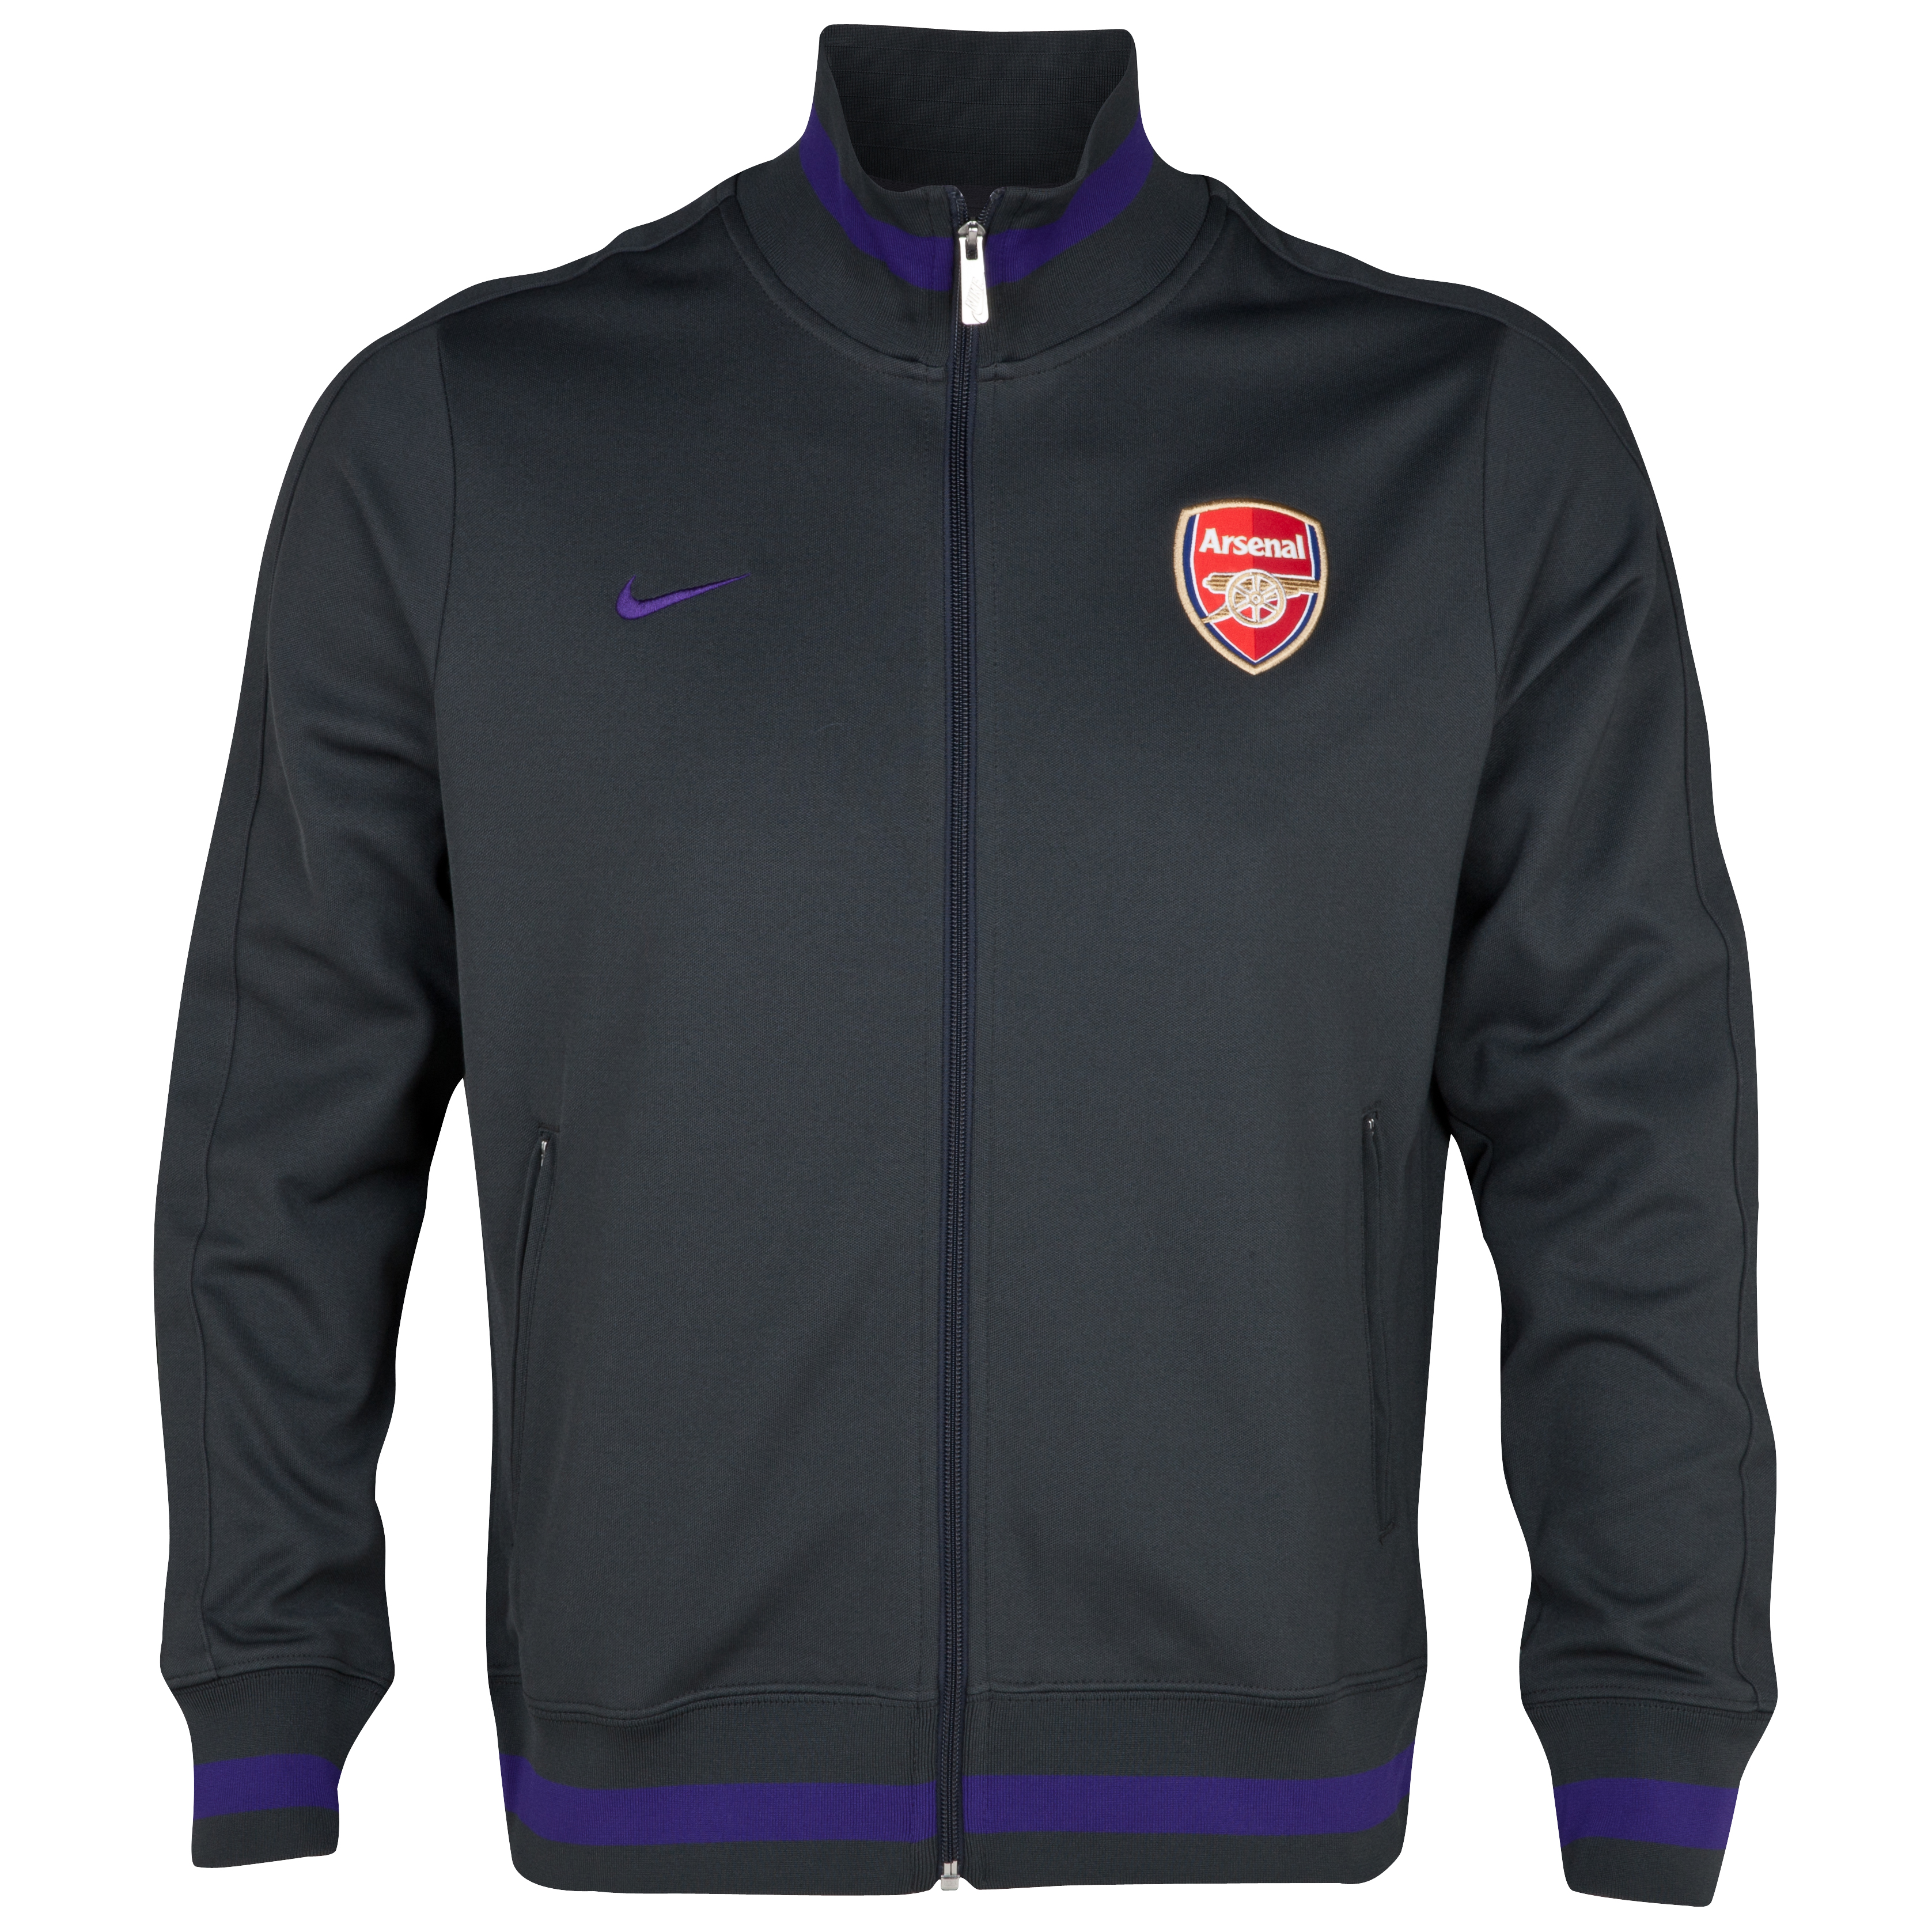 Arsenal Authentic N98 Track Jacket - Anthracite/Court Purple